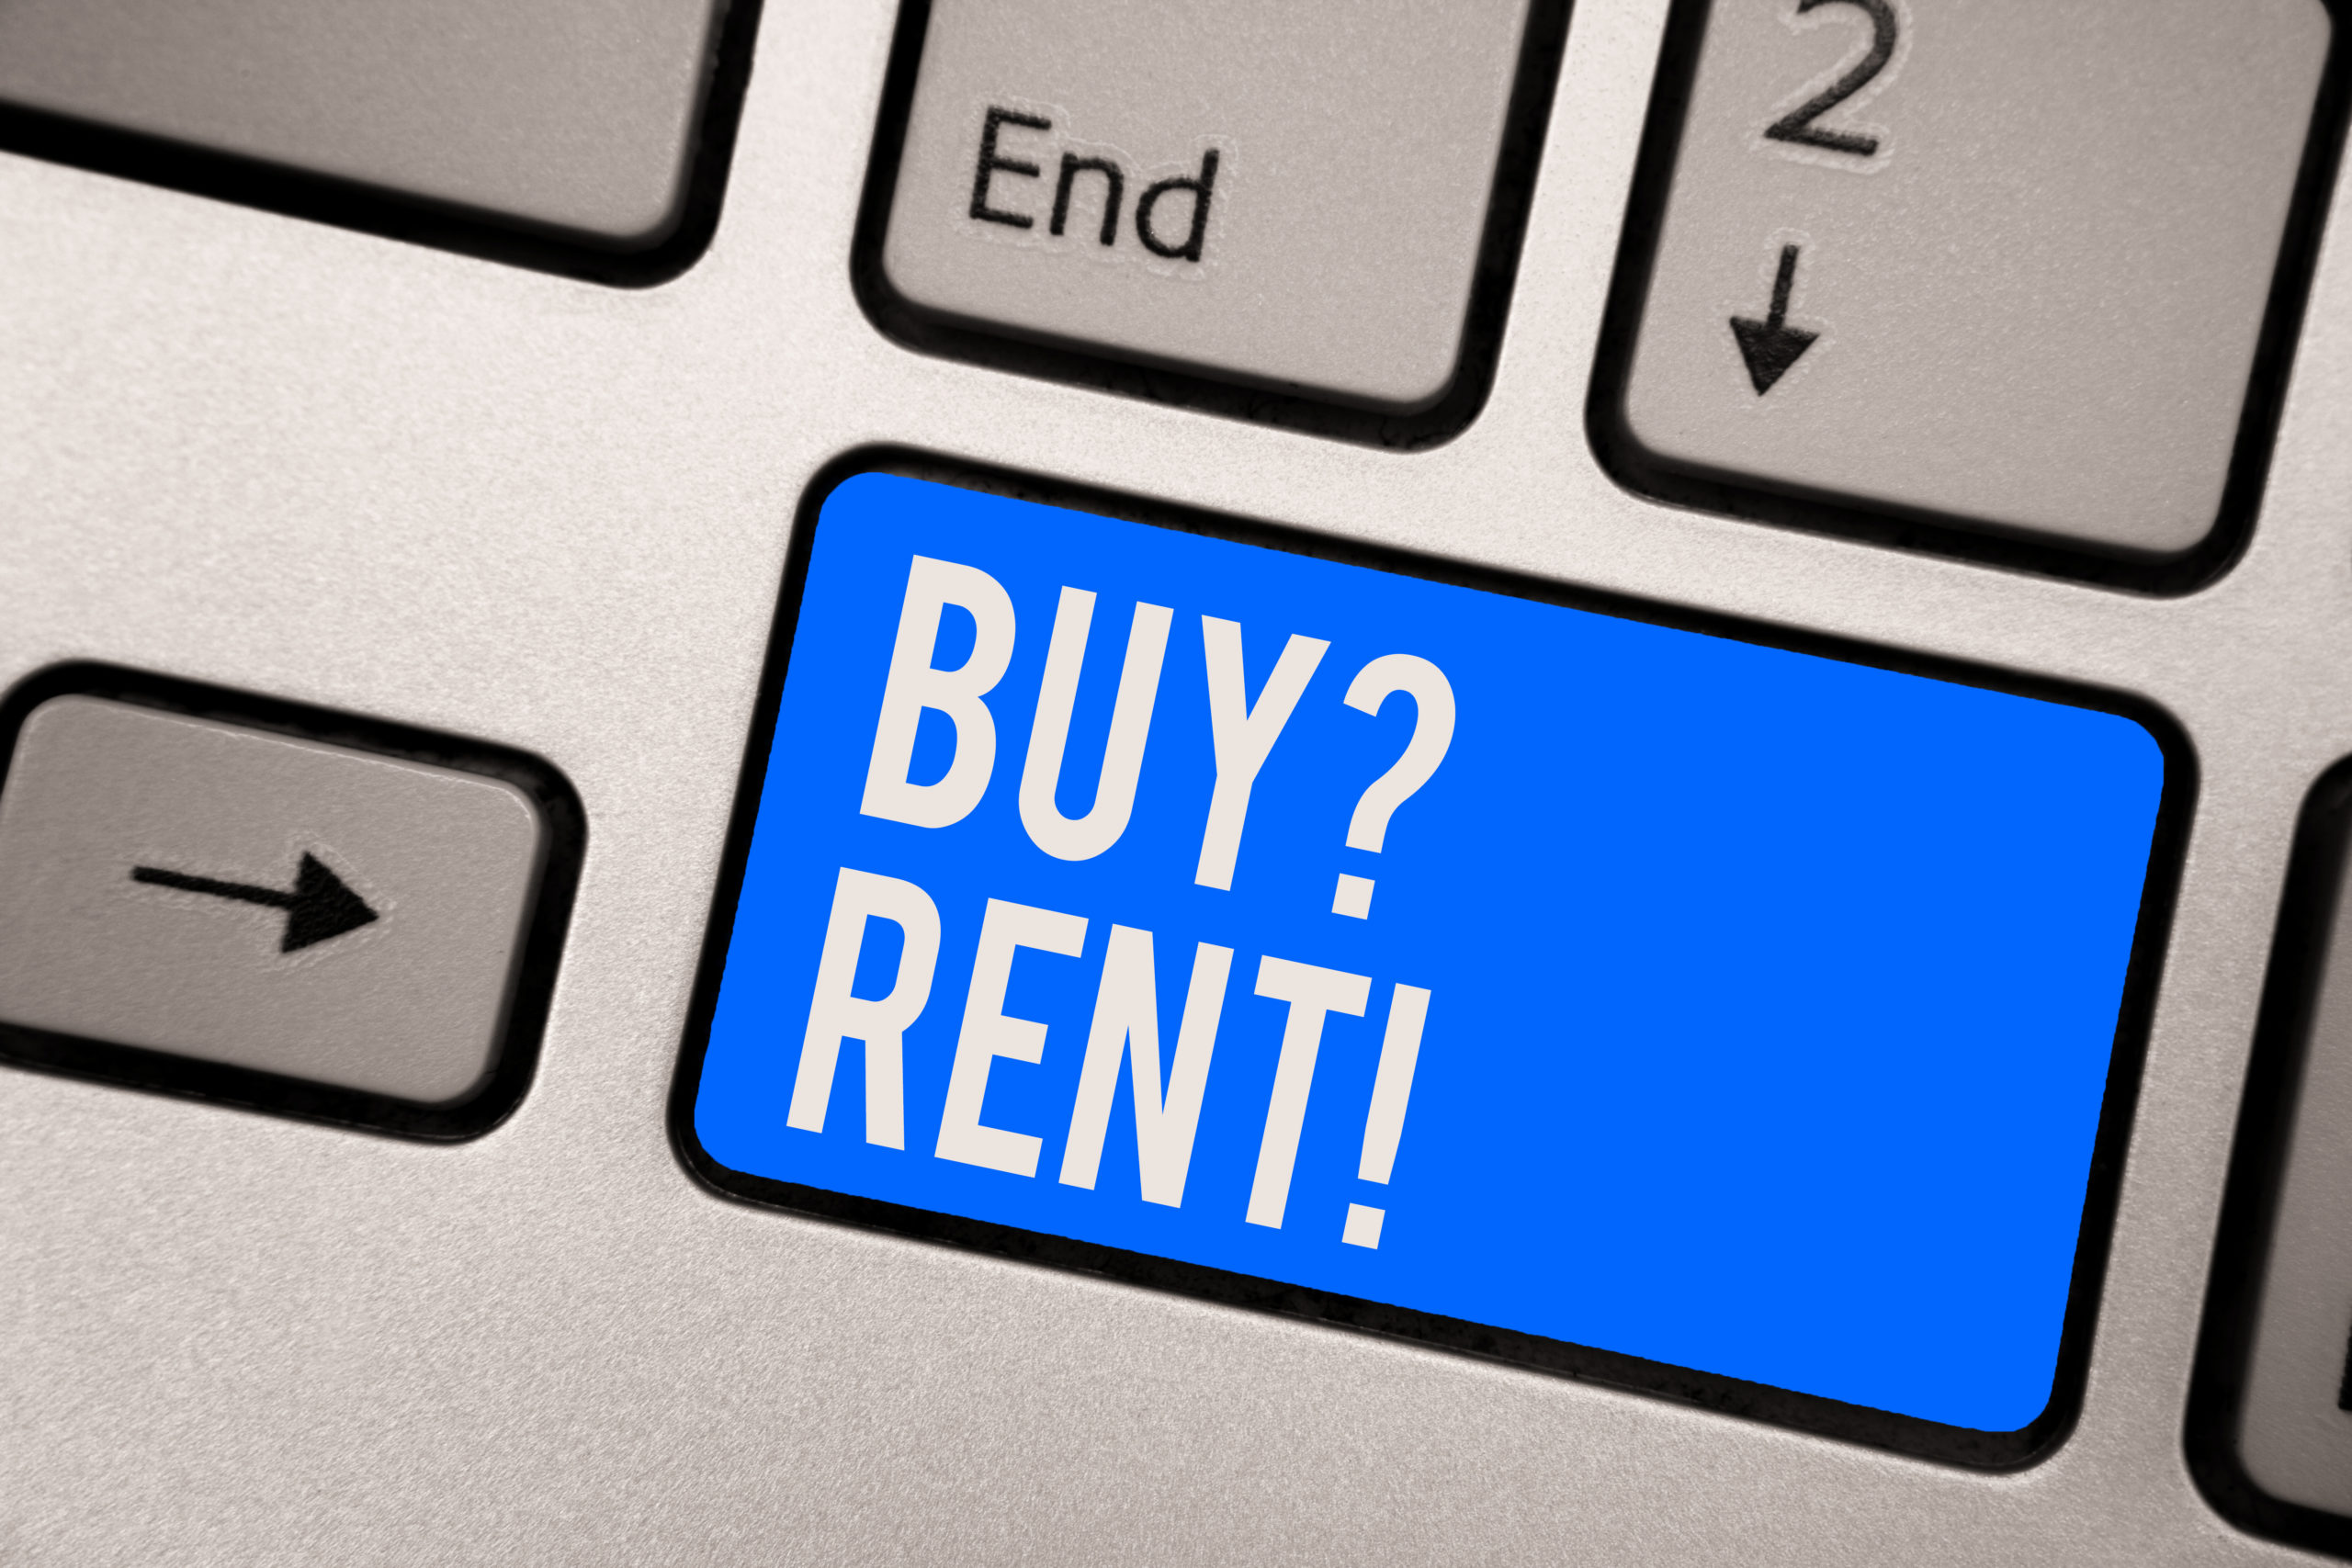 Text sign showing Buy question Rent. Conceptual photo Group that gives information about renting houses Keyboard blue key Intention create computer computing reflection document.